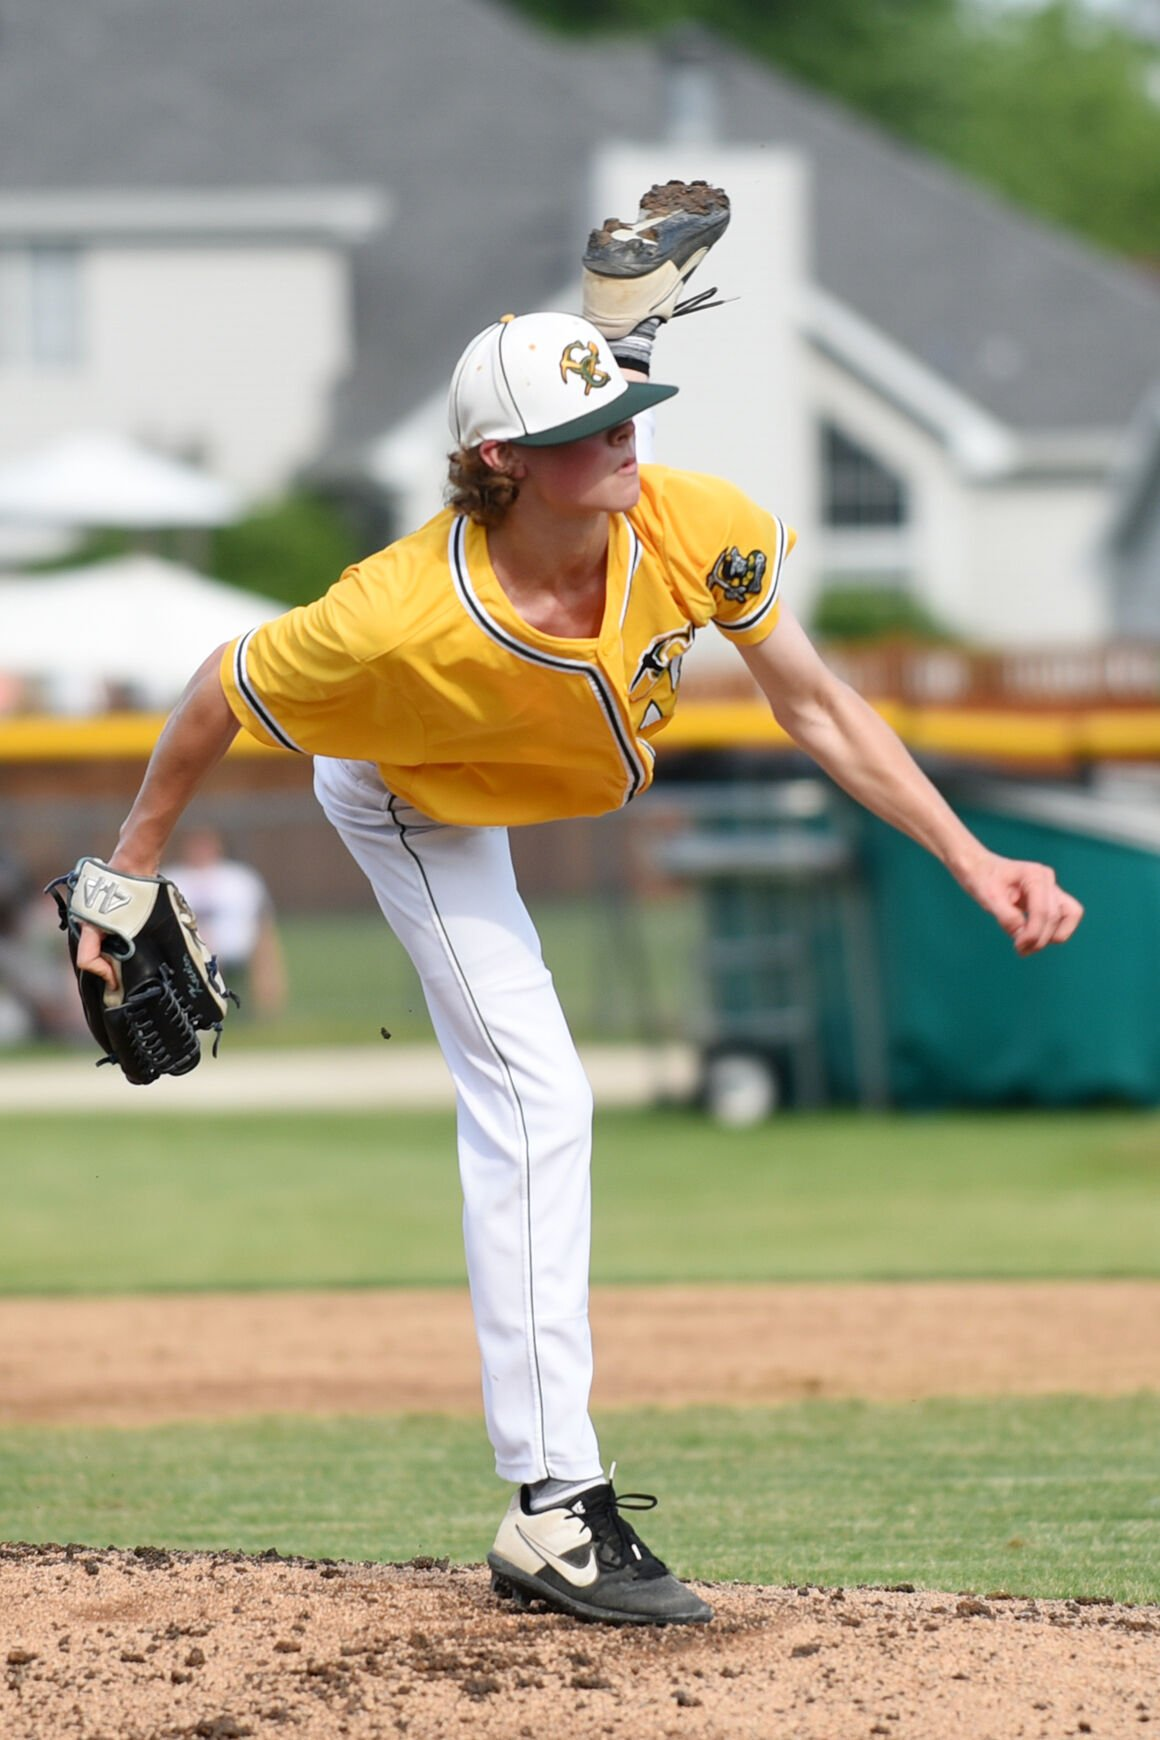 BASEBALL: Coal City can't recover from early woes in sectional championship